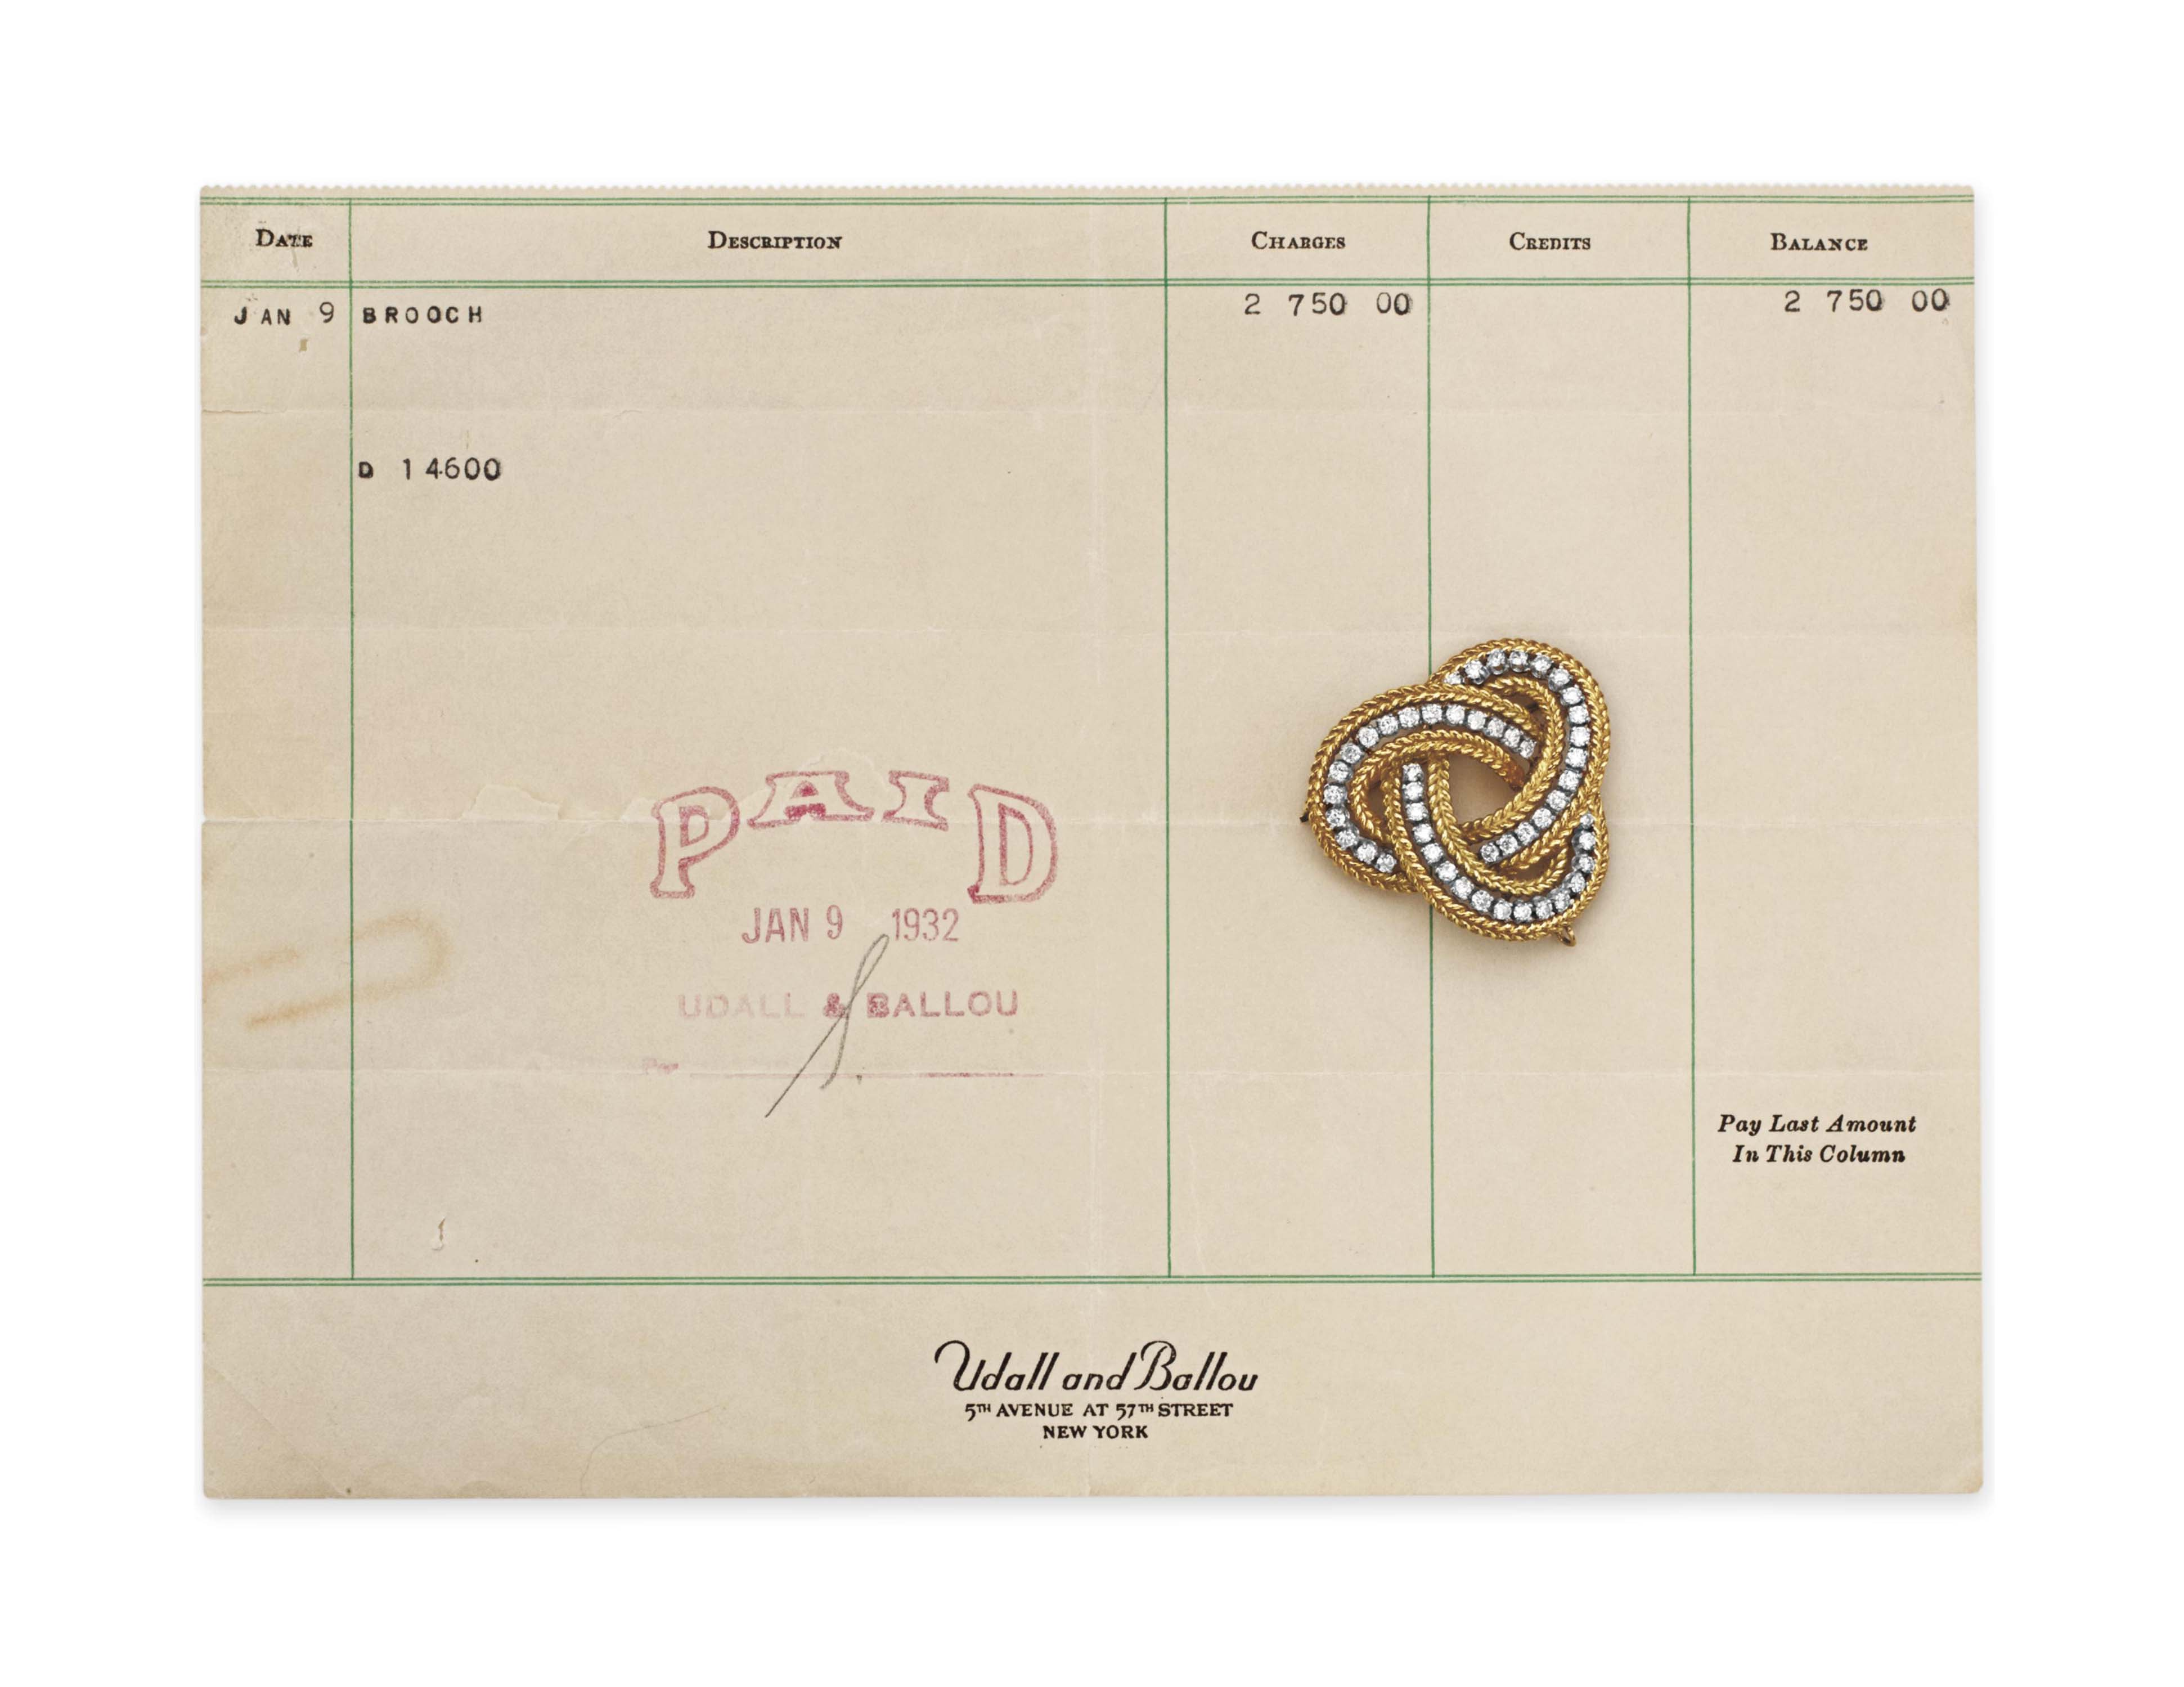 A DIAMOND AND GOLD BROOCH, BY UDALL & BALLOU